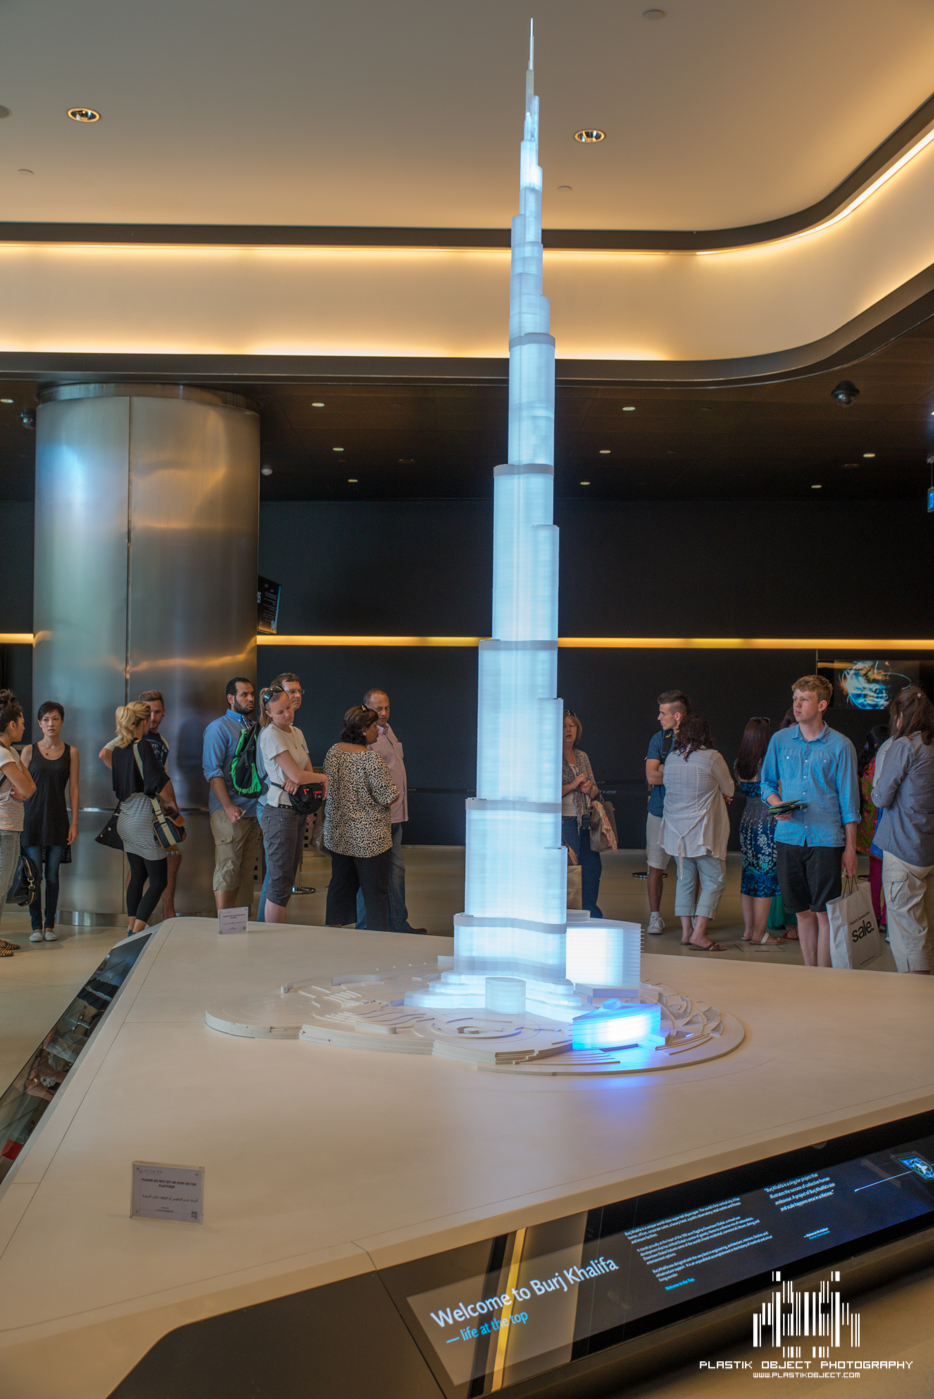 The waiting area before walking to the elevators. The entrance to the tour is actually in the Dubai Mall.